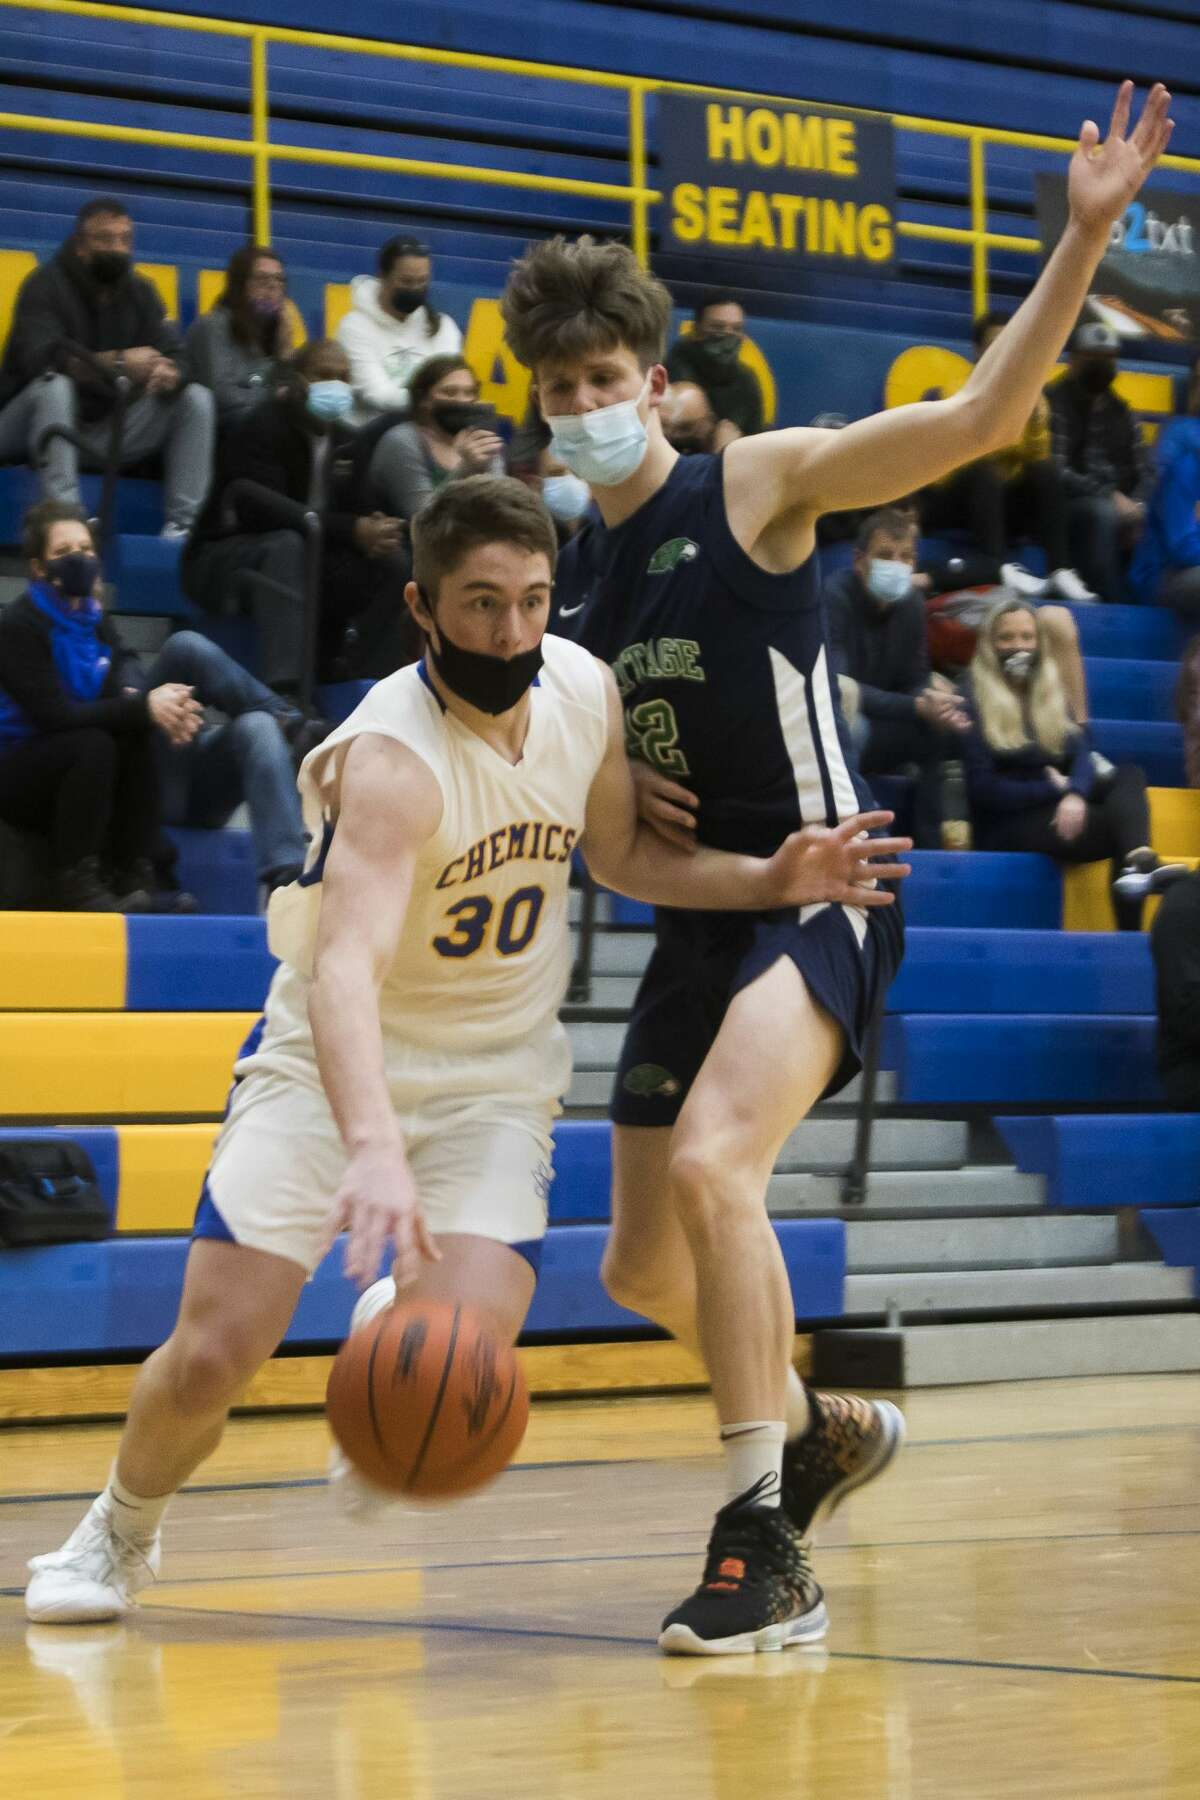 Midland's Drew Barrie dribbles down the court during the Chemics' game against Saginaw Heritage Tuesday, Feb. 9, 2021 at Midland High School. (Katy Kildee/kkildee@mdn.net)